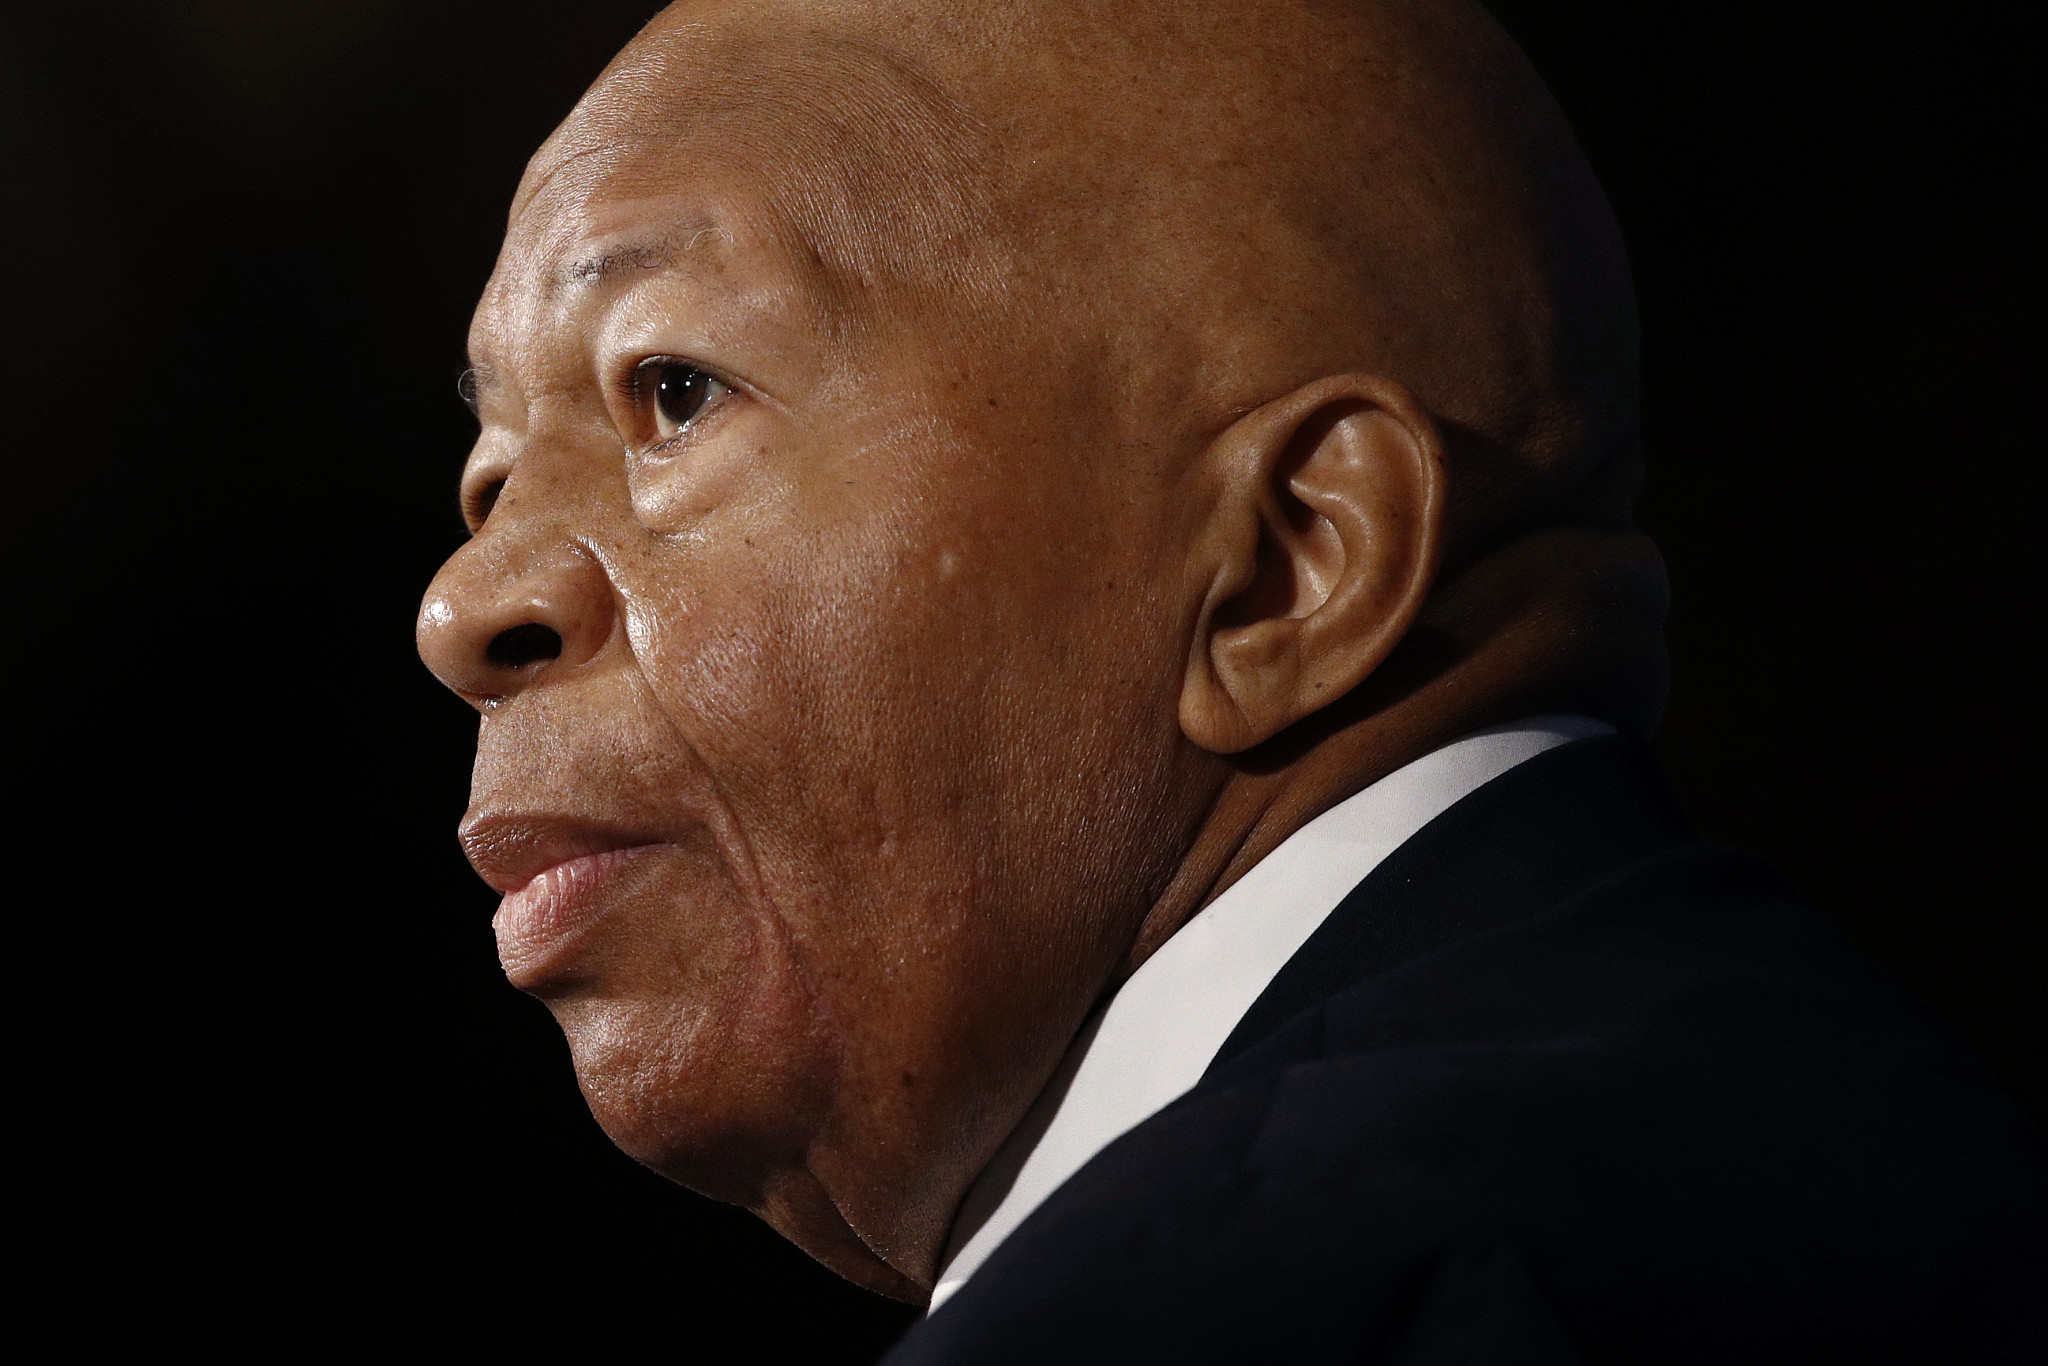 Congressman Elijah Cummings passes away after 'longstanding health challenges'